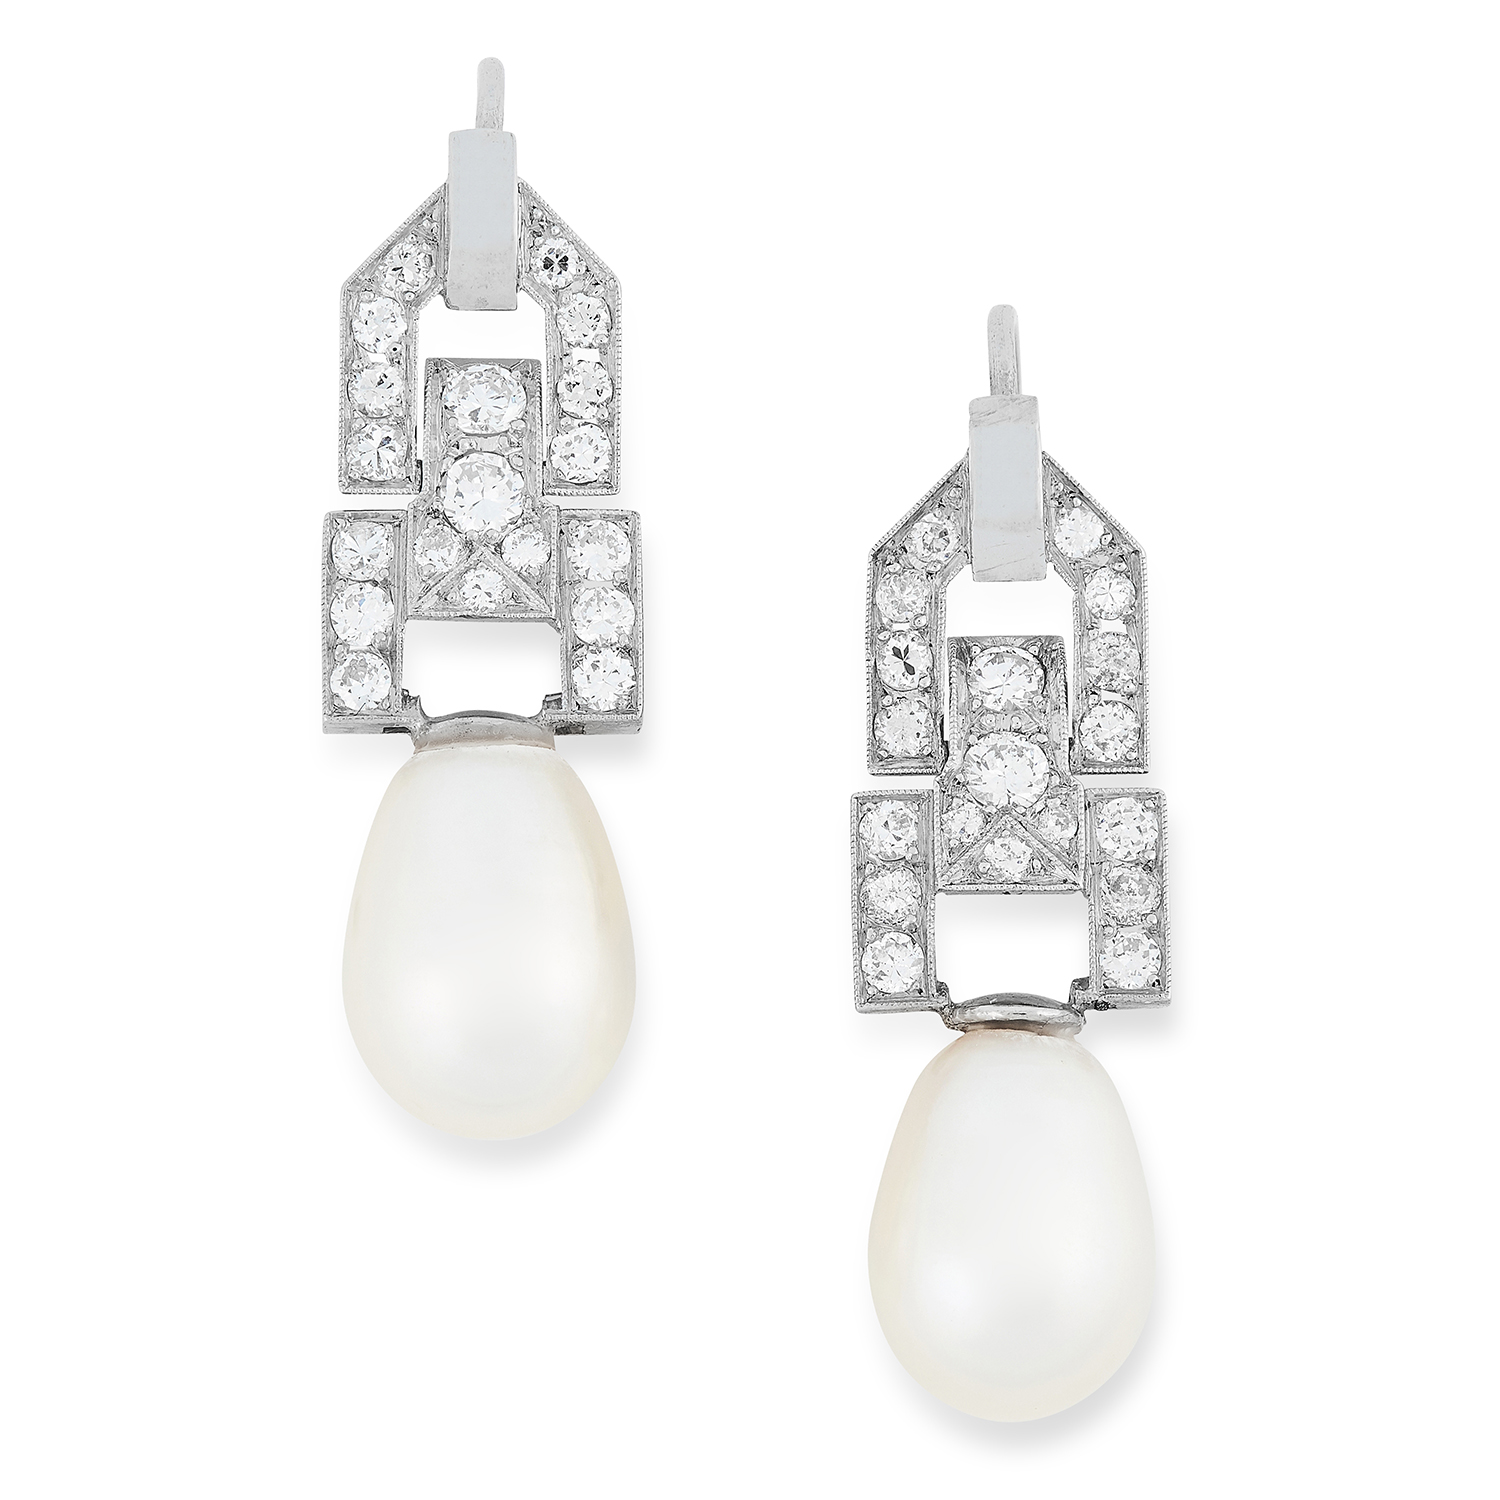 Los 2 - A PAIR OF PEARL AND DIAMOND EARRINGS the articulated body of each set with round cut diamonds